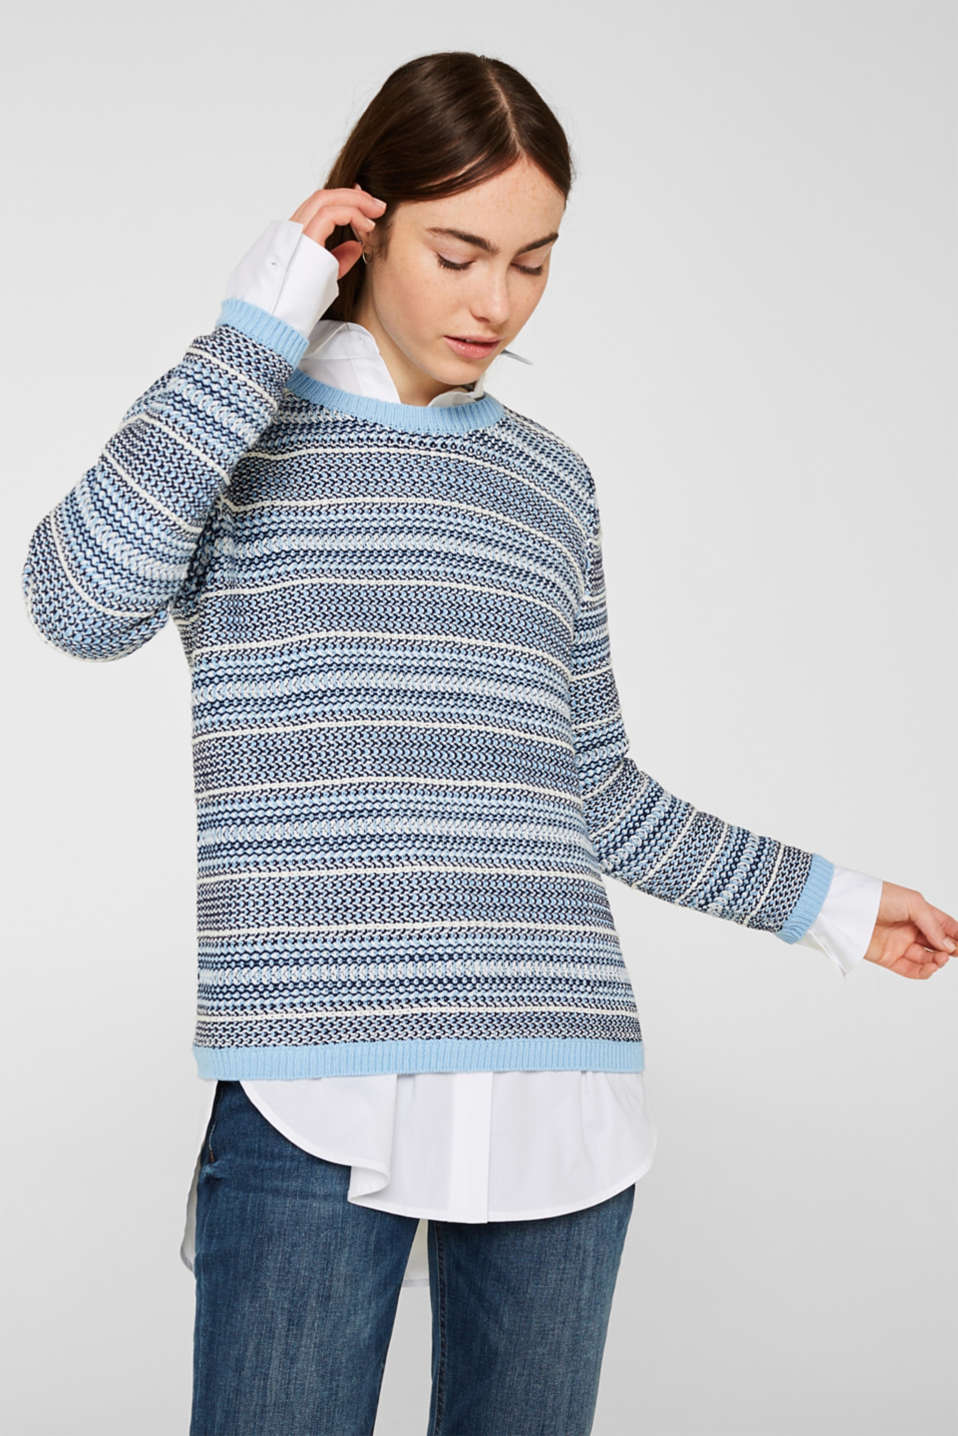 Esprit - Pull-over multicolore texturé